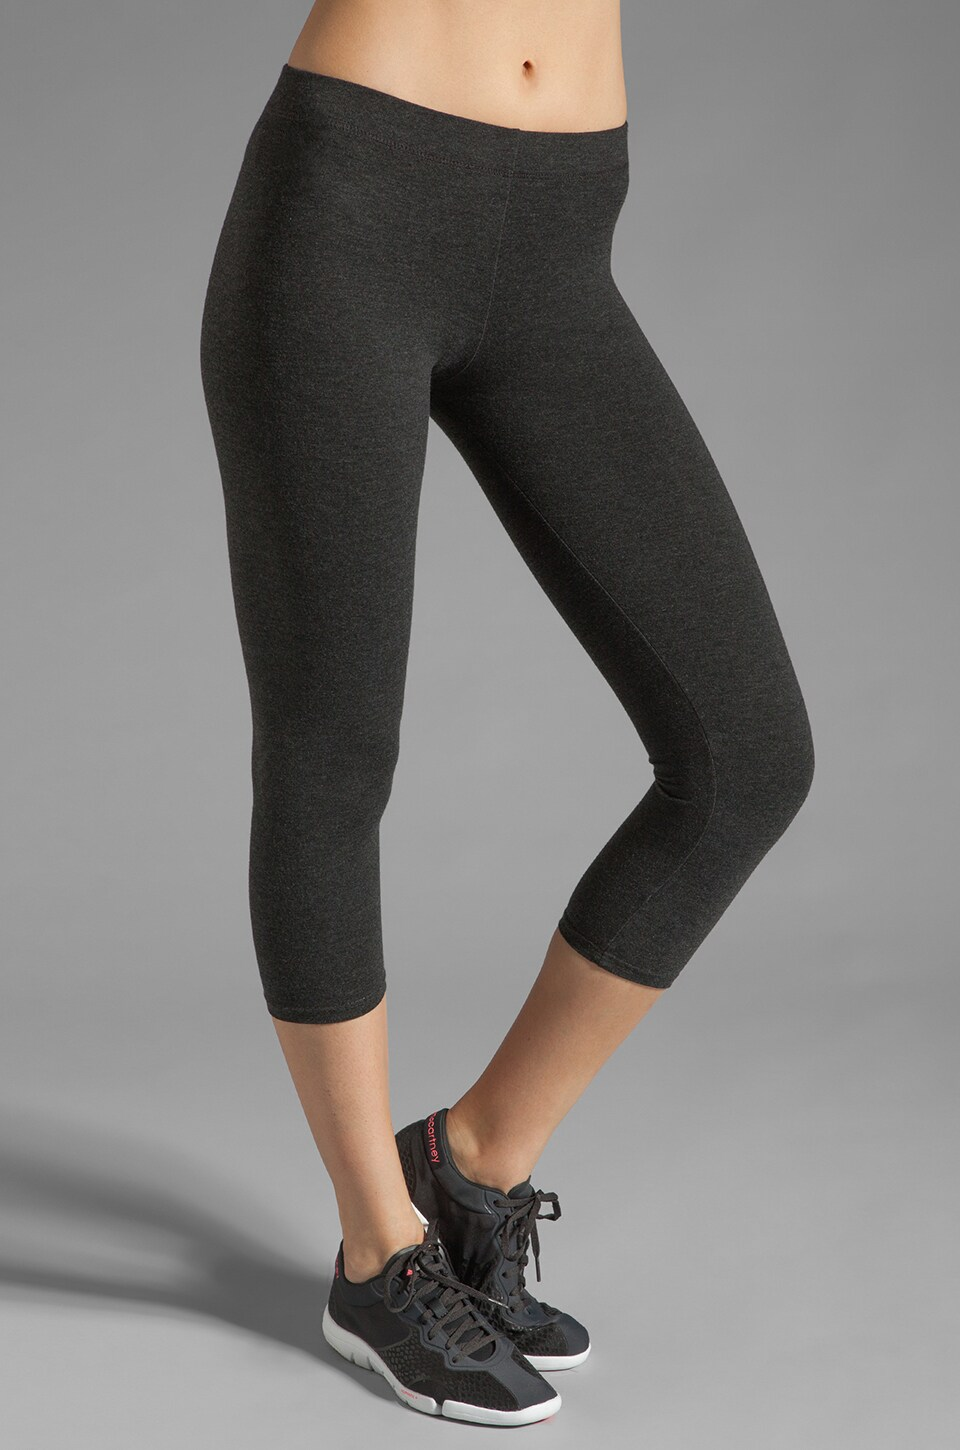 SOLOW Crop Legging in Heather Charcoal